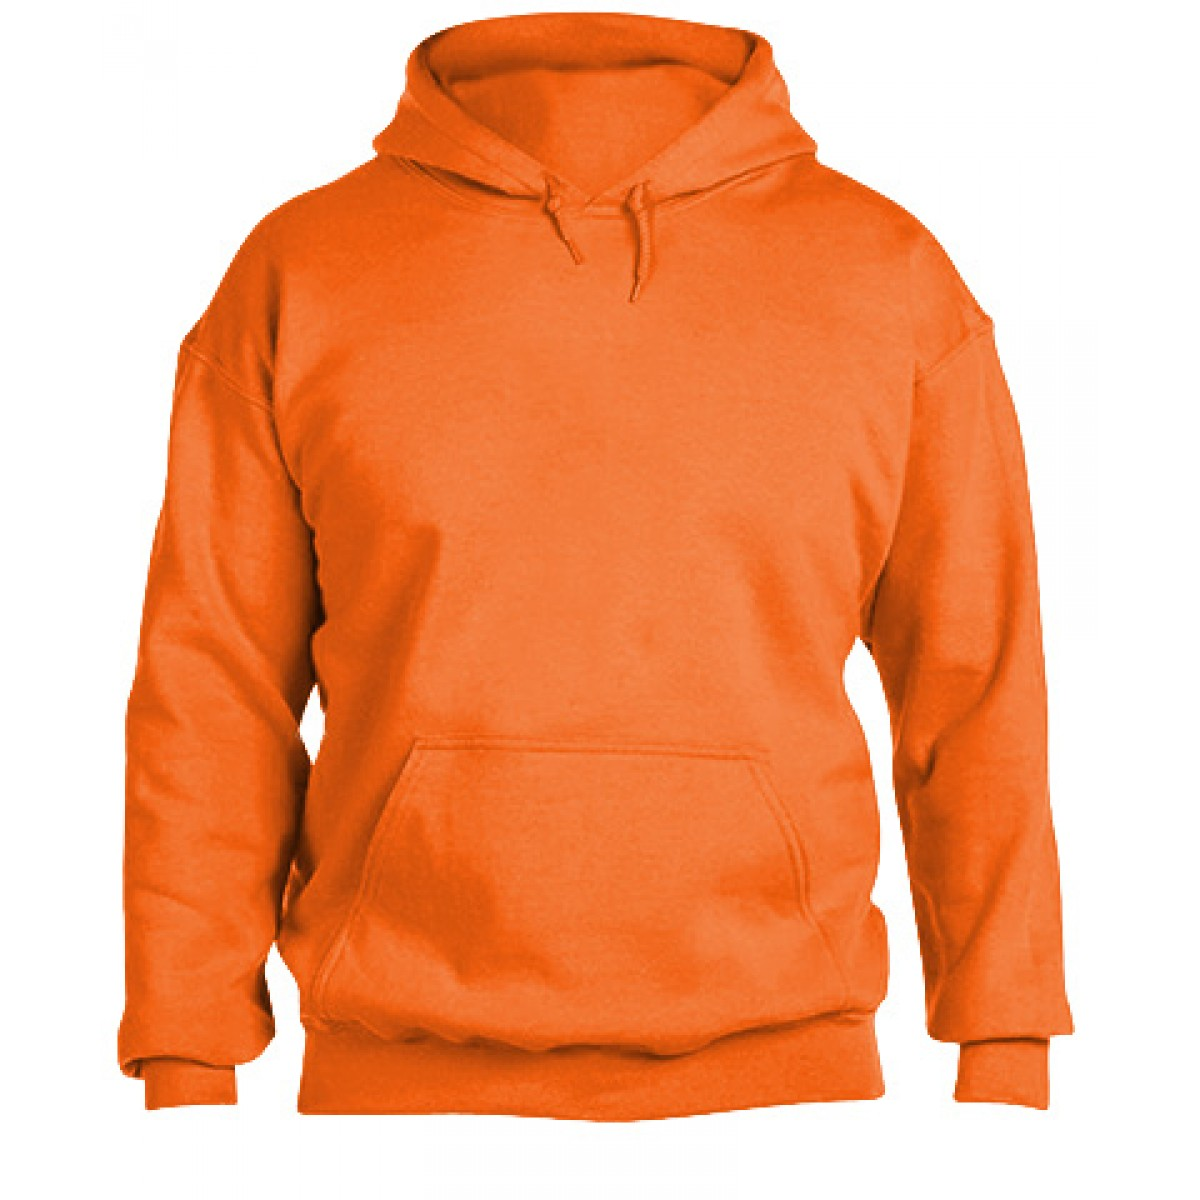 Hooded Sweatshirt 50/50 Heavy Blend-Safety Orange-L